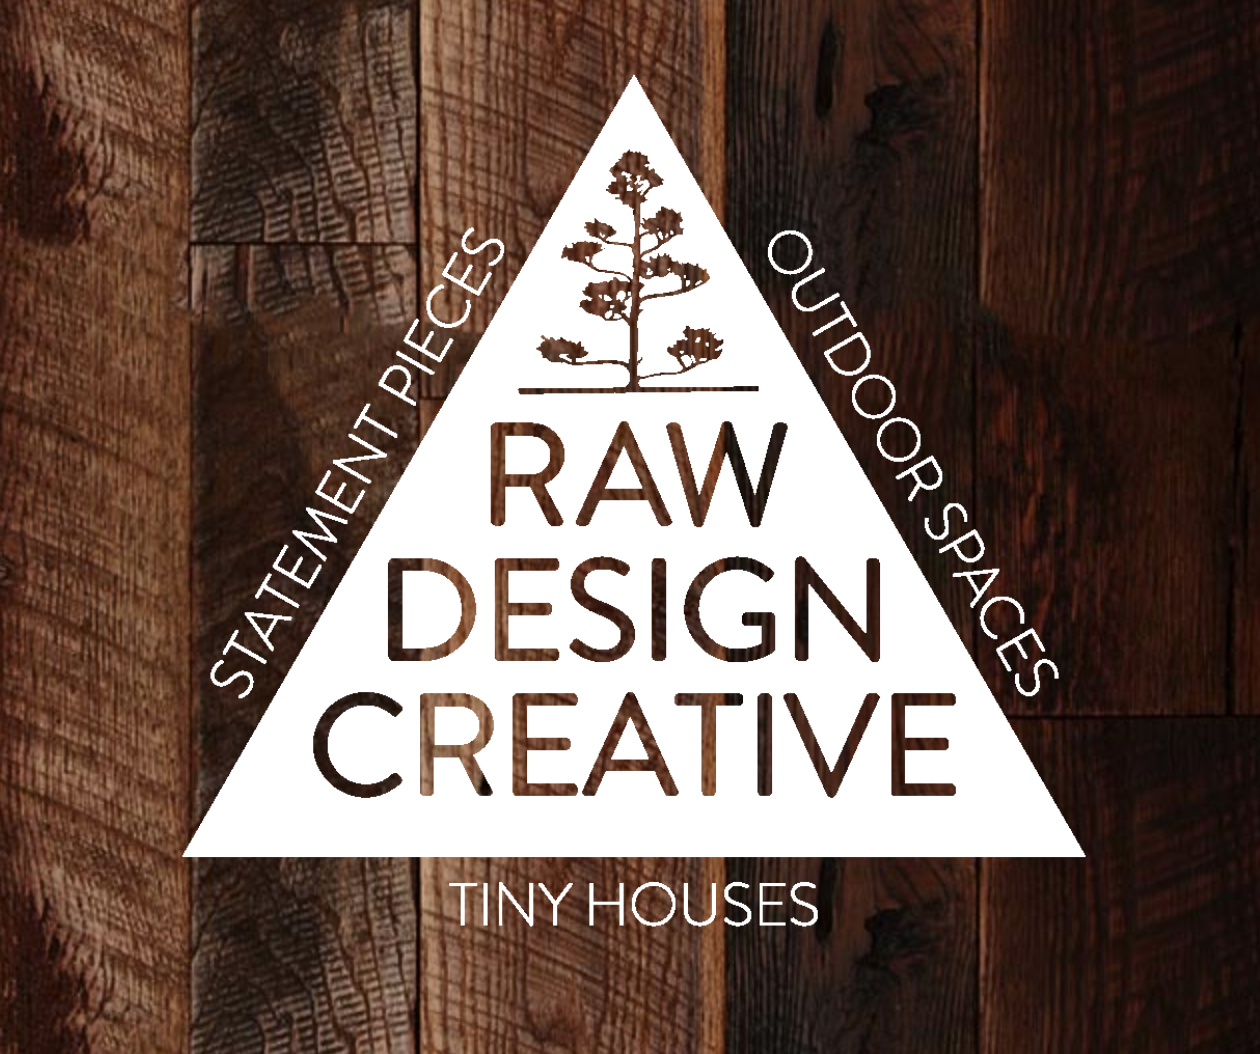 rawdesigncreative-logo-1